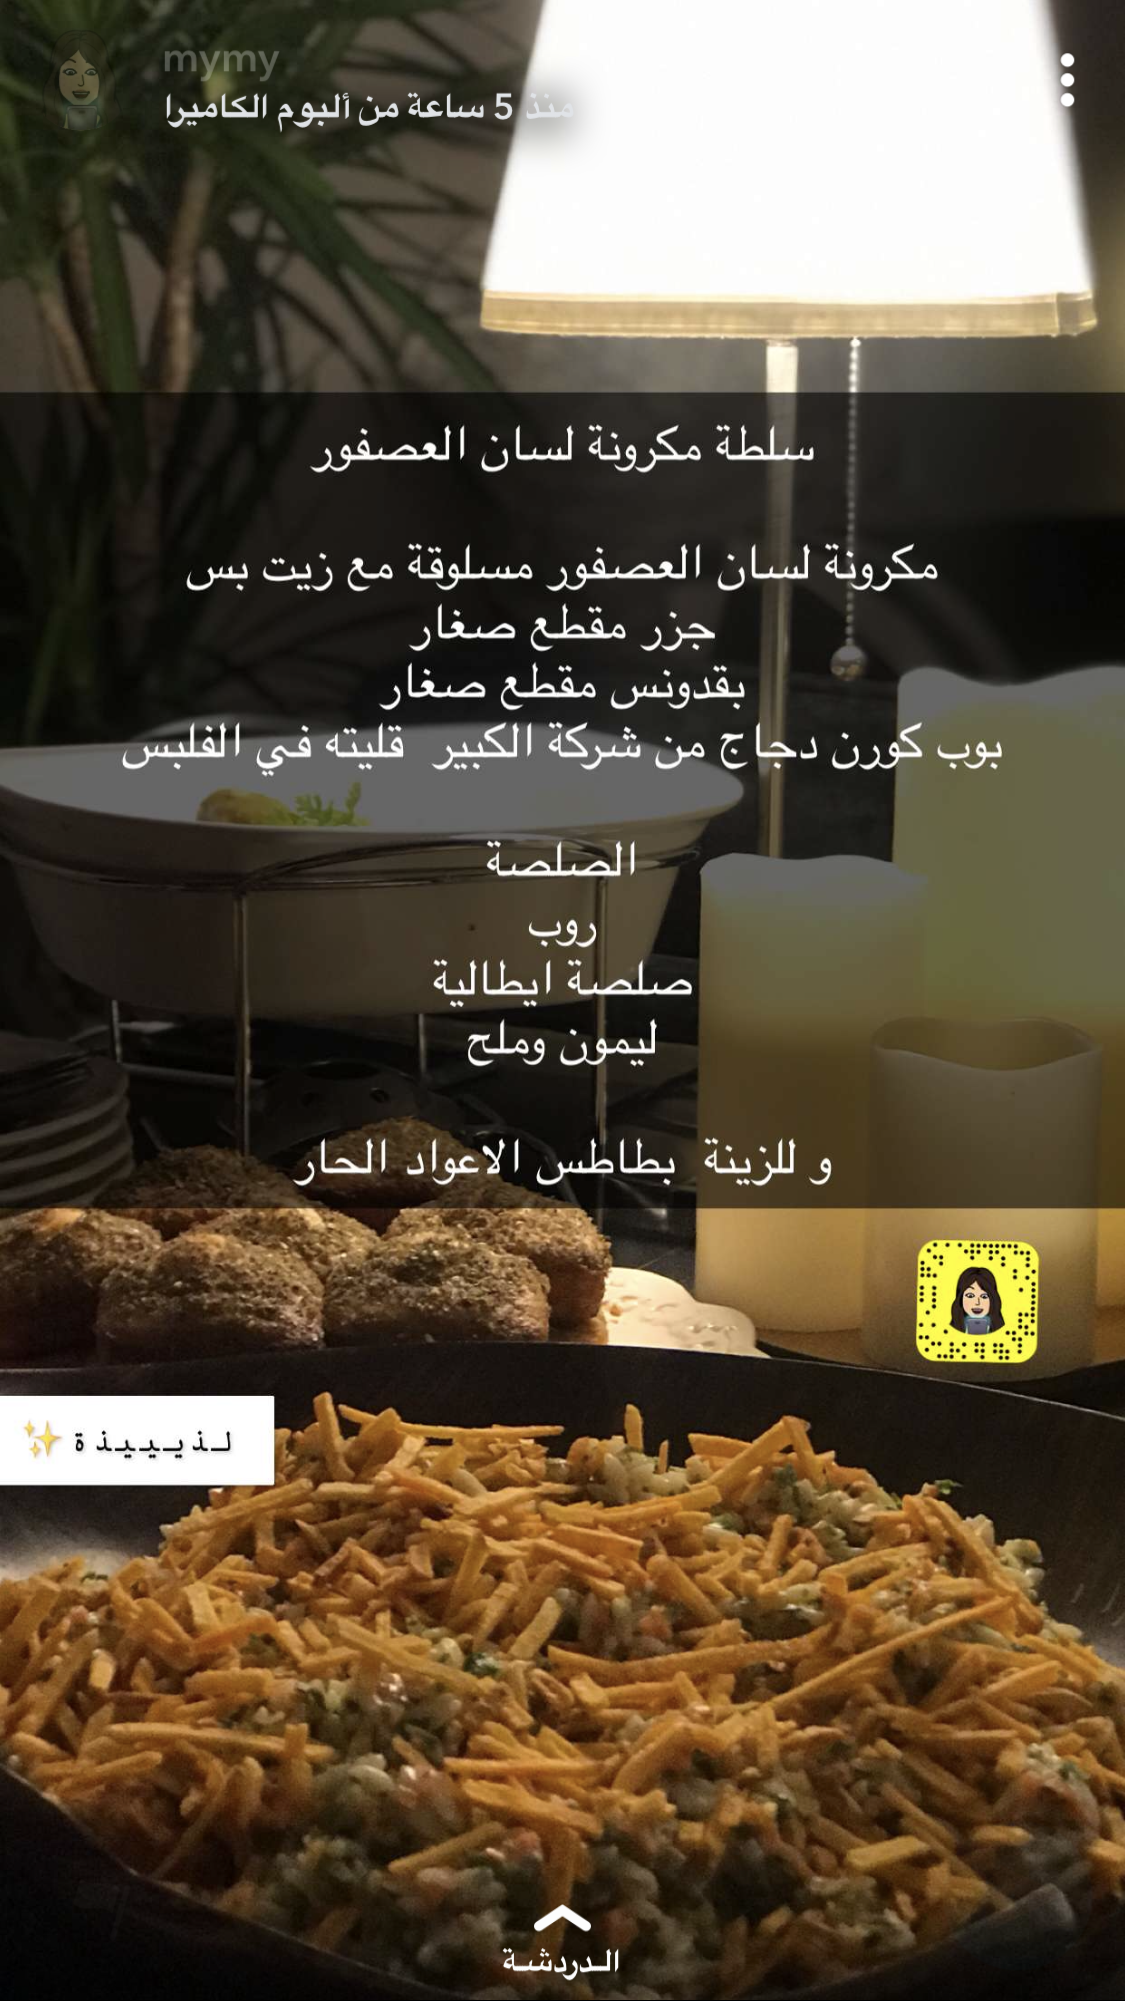 Pin By Maryam Alhbail On Food And Drink In 2020 Arabic Food Food And Drink Food